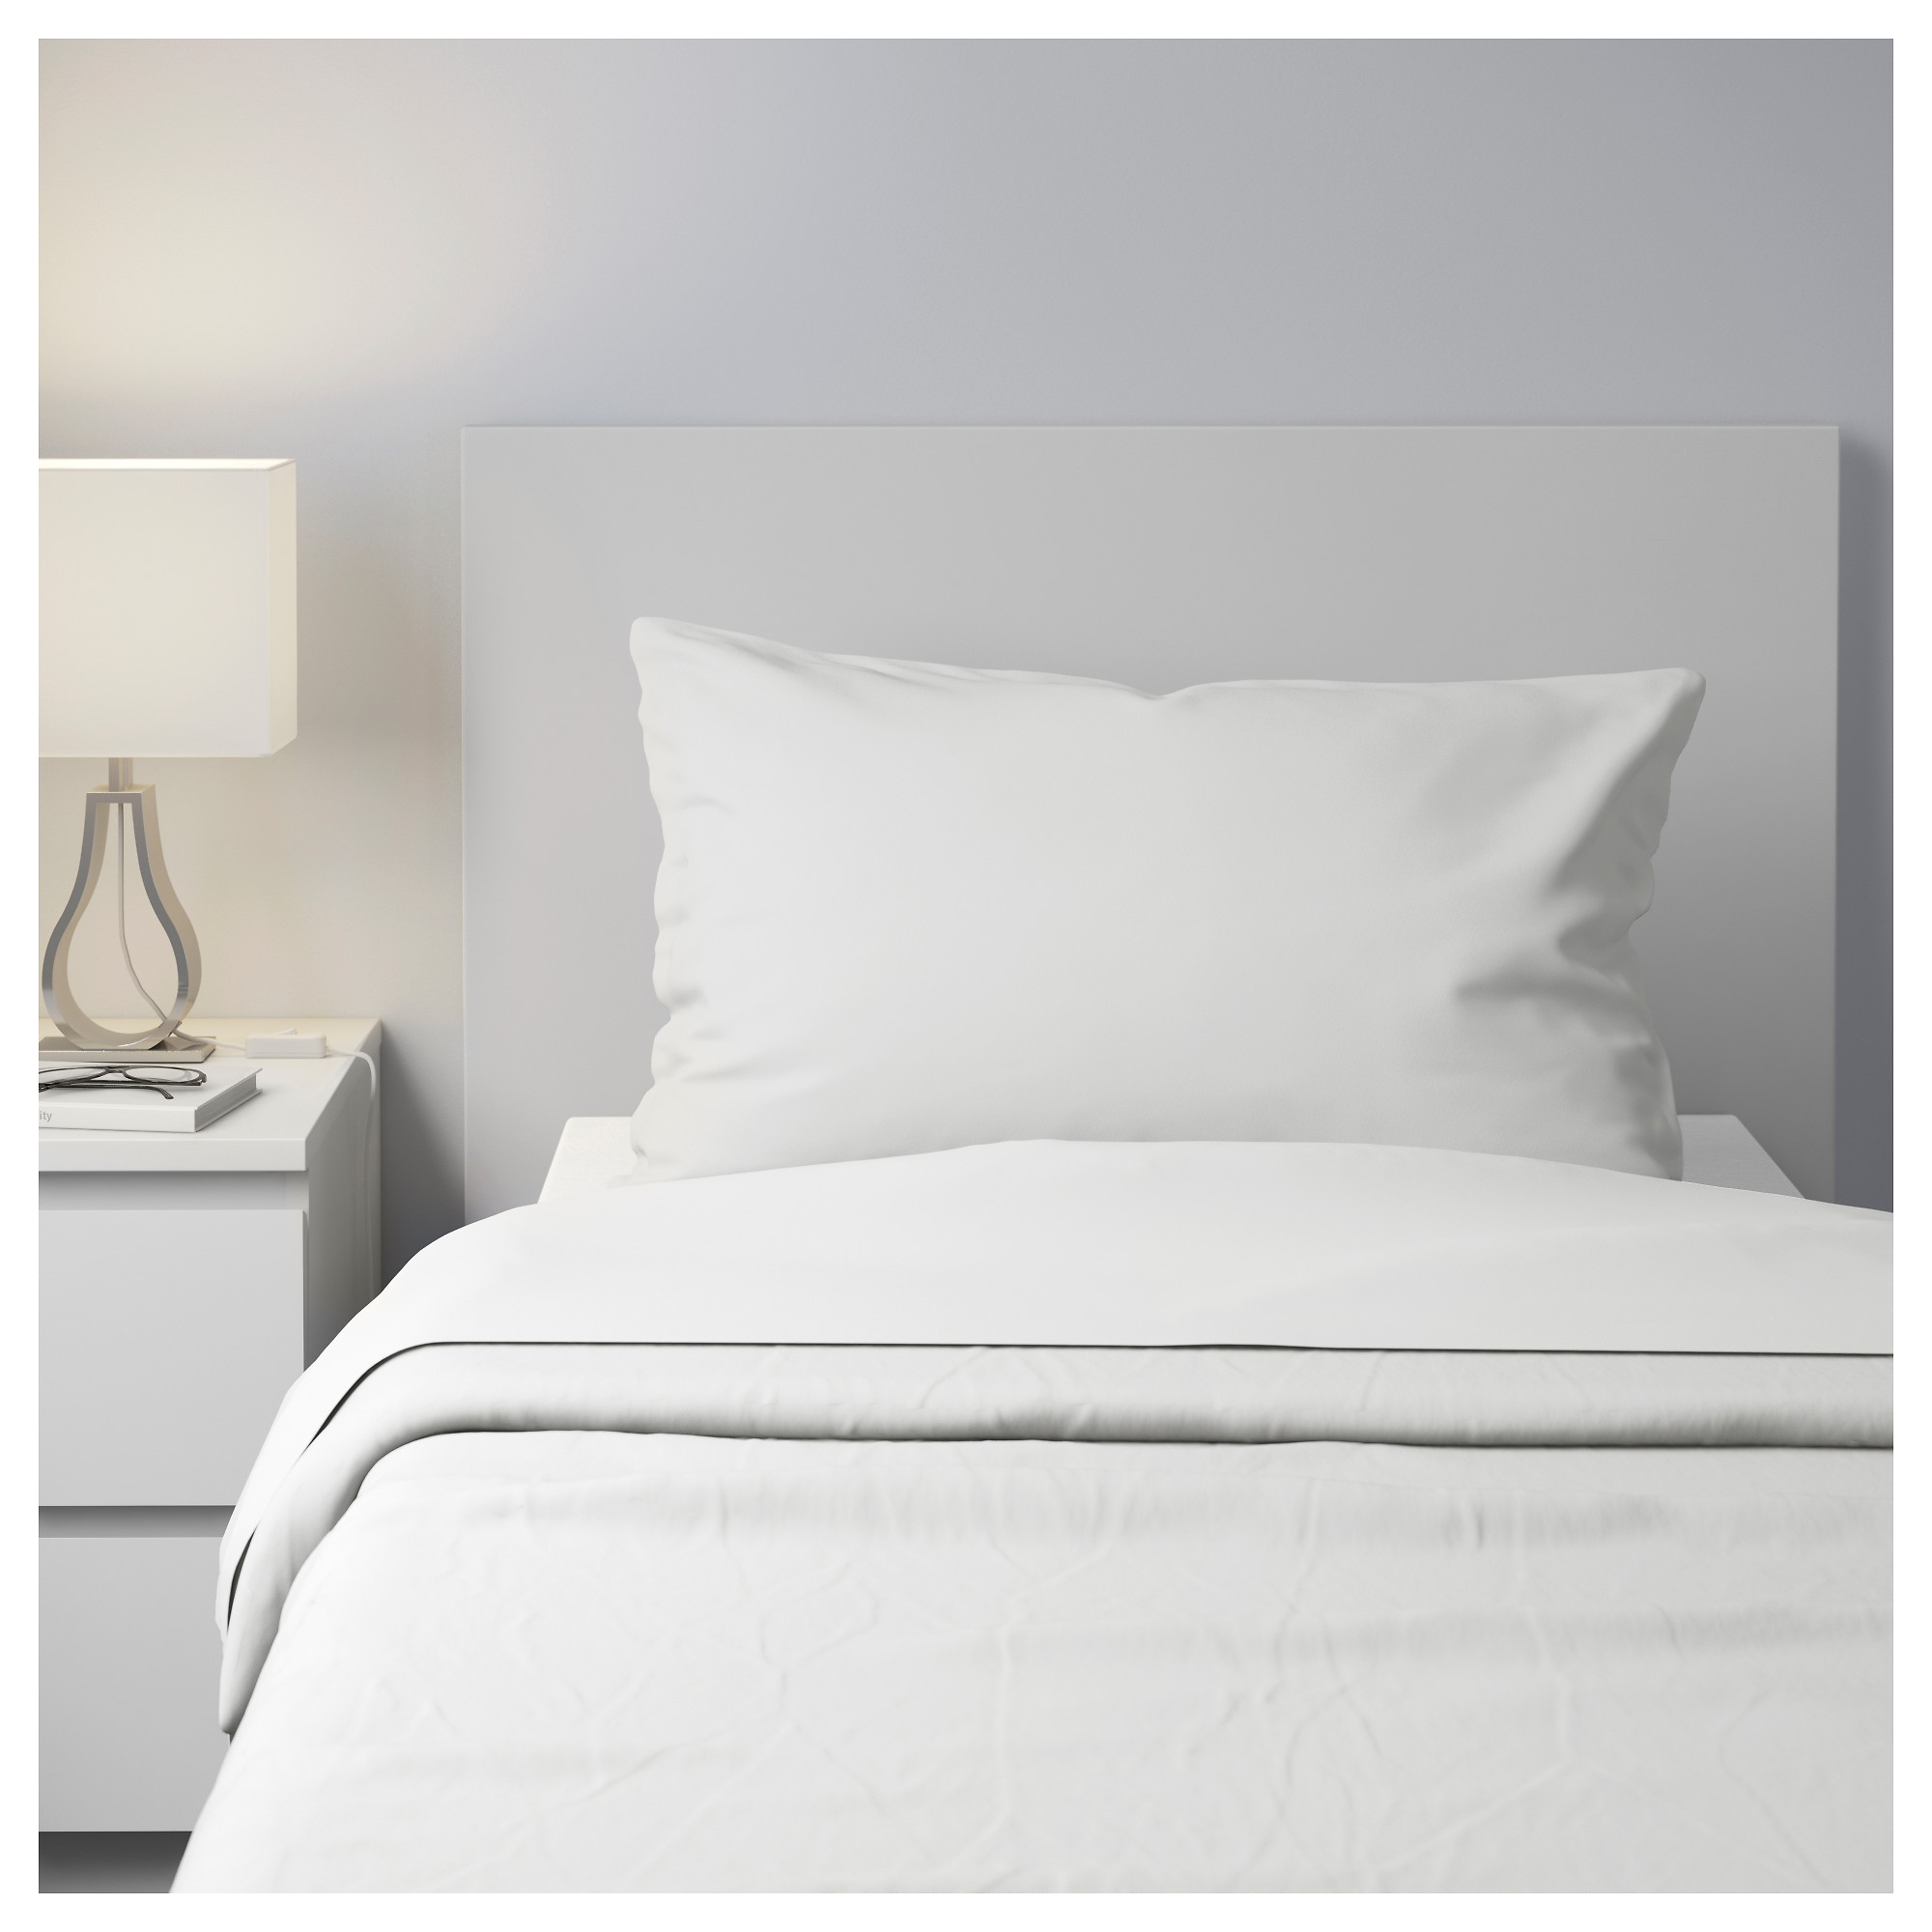 Design Ikea Bedding bedding bed linen ikea nordruta sheet set white thread count 86 count